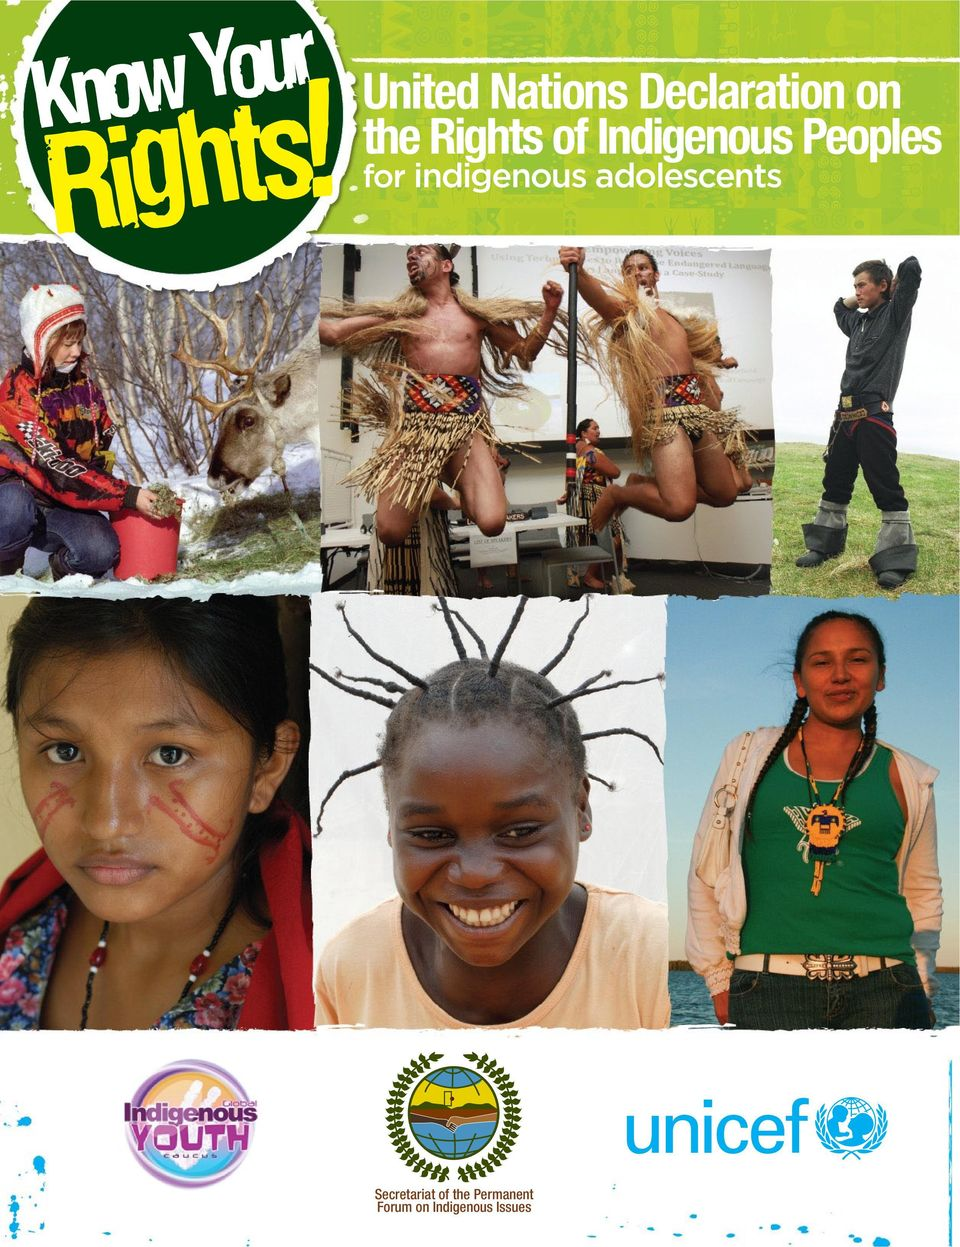 of Indigenous Peoples for indigenous